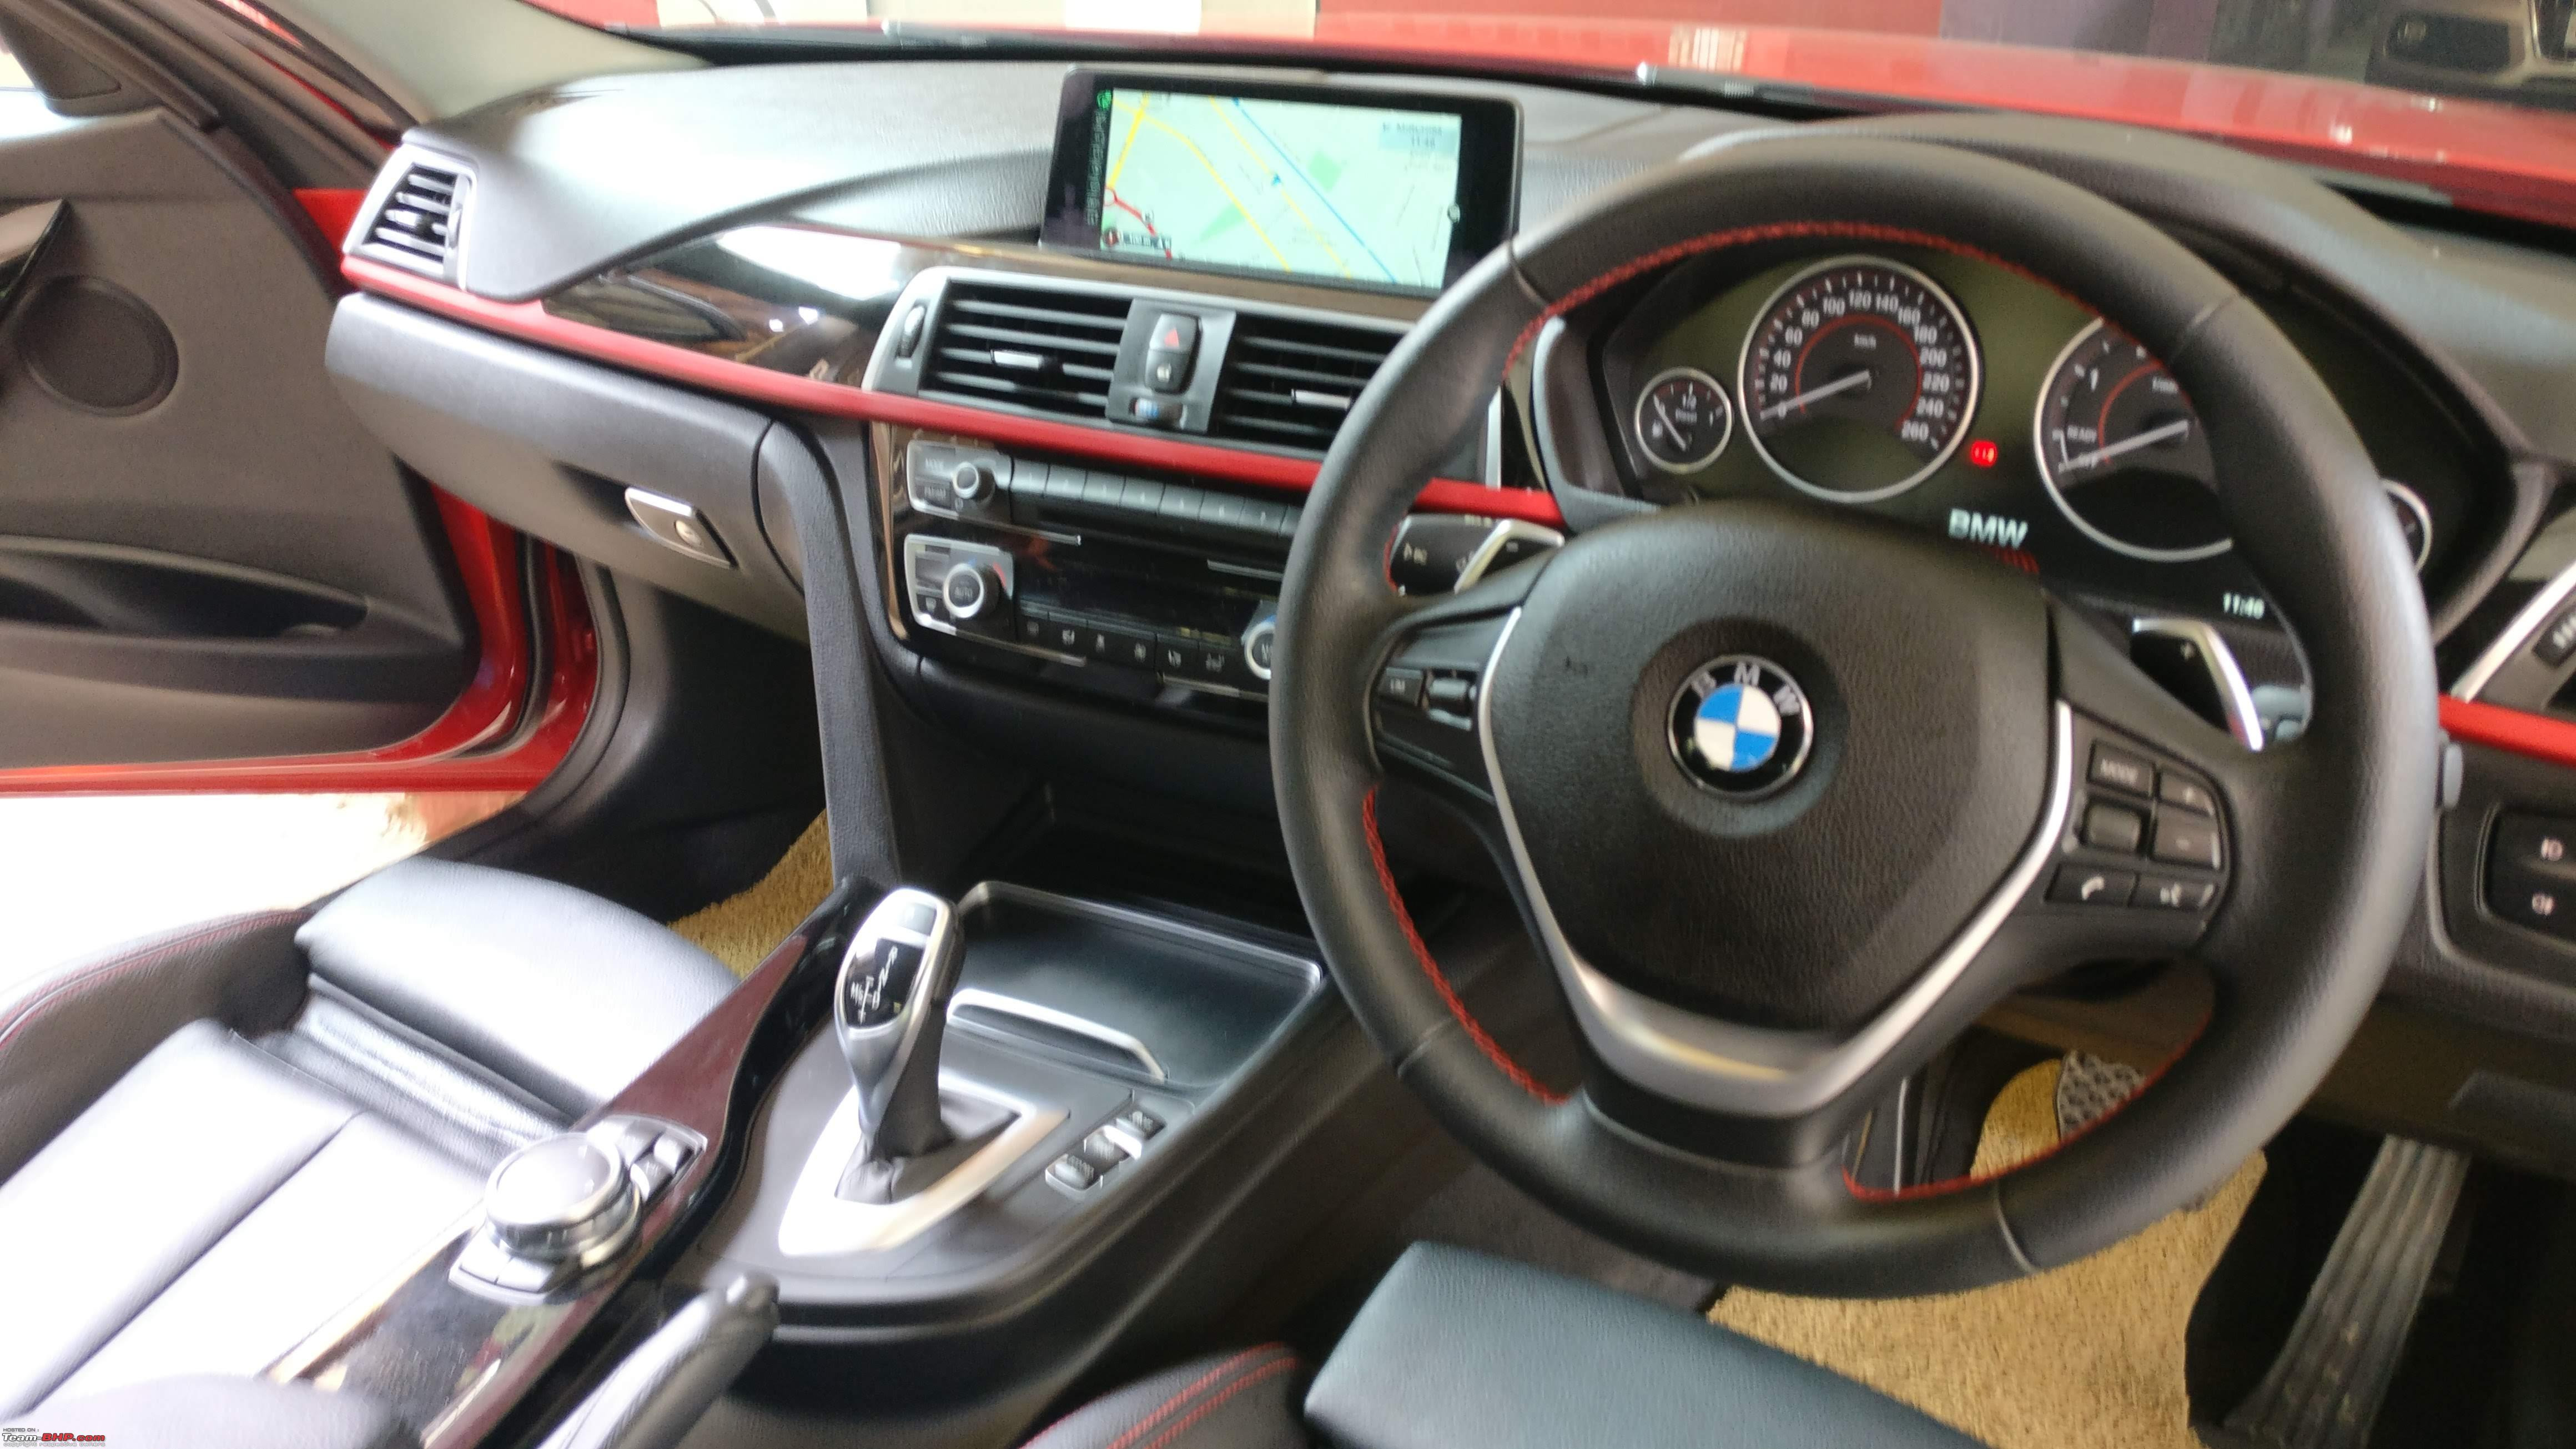 Red-Hot BMW: Story of my pre-owned BMW 320d Sport Line (F30